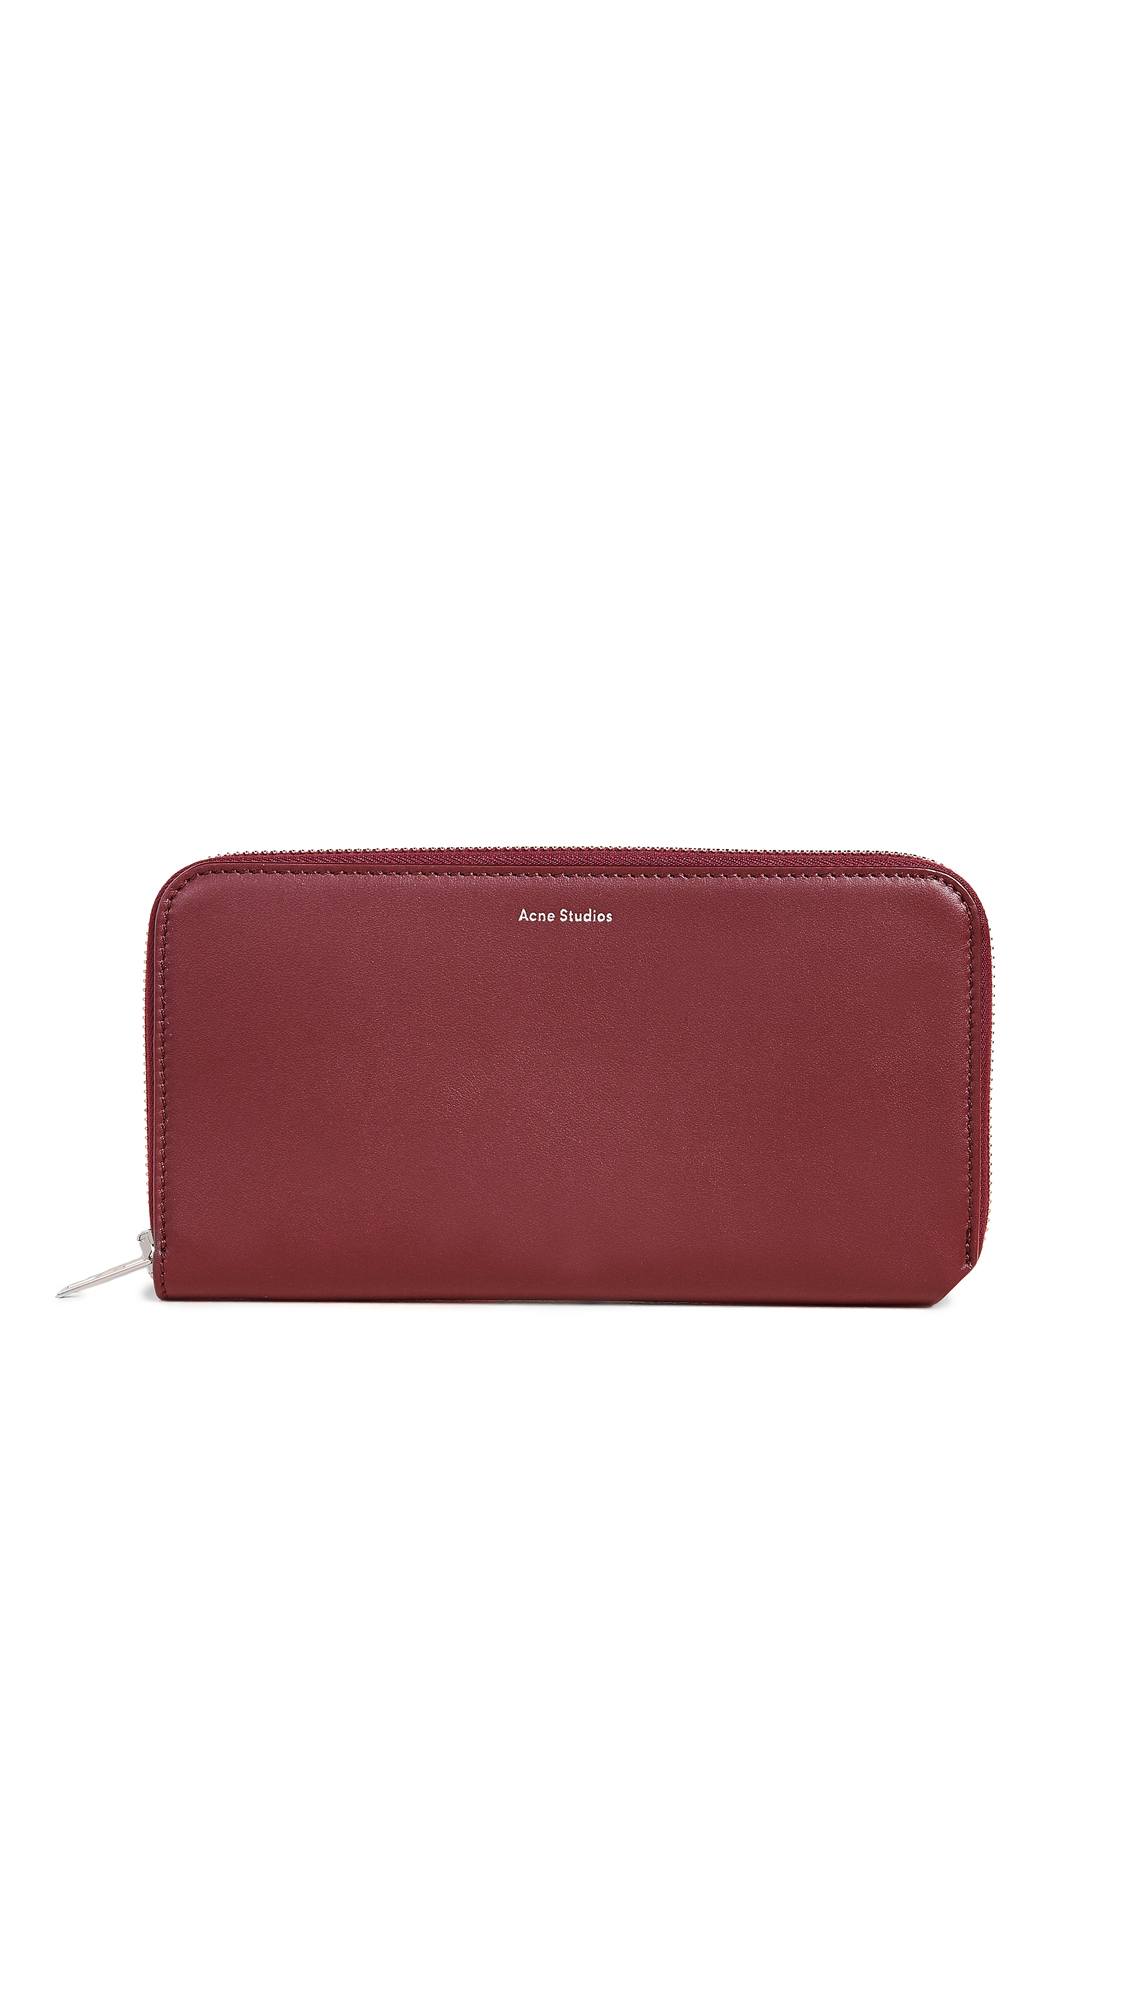 Acne Studios Flourite S Continental Wallet In Burgundy